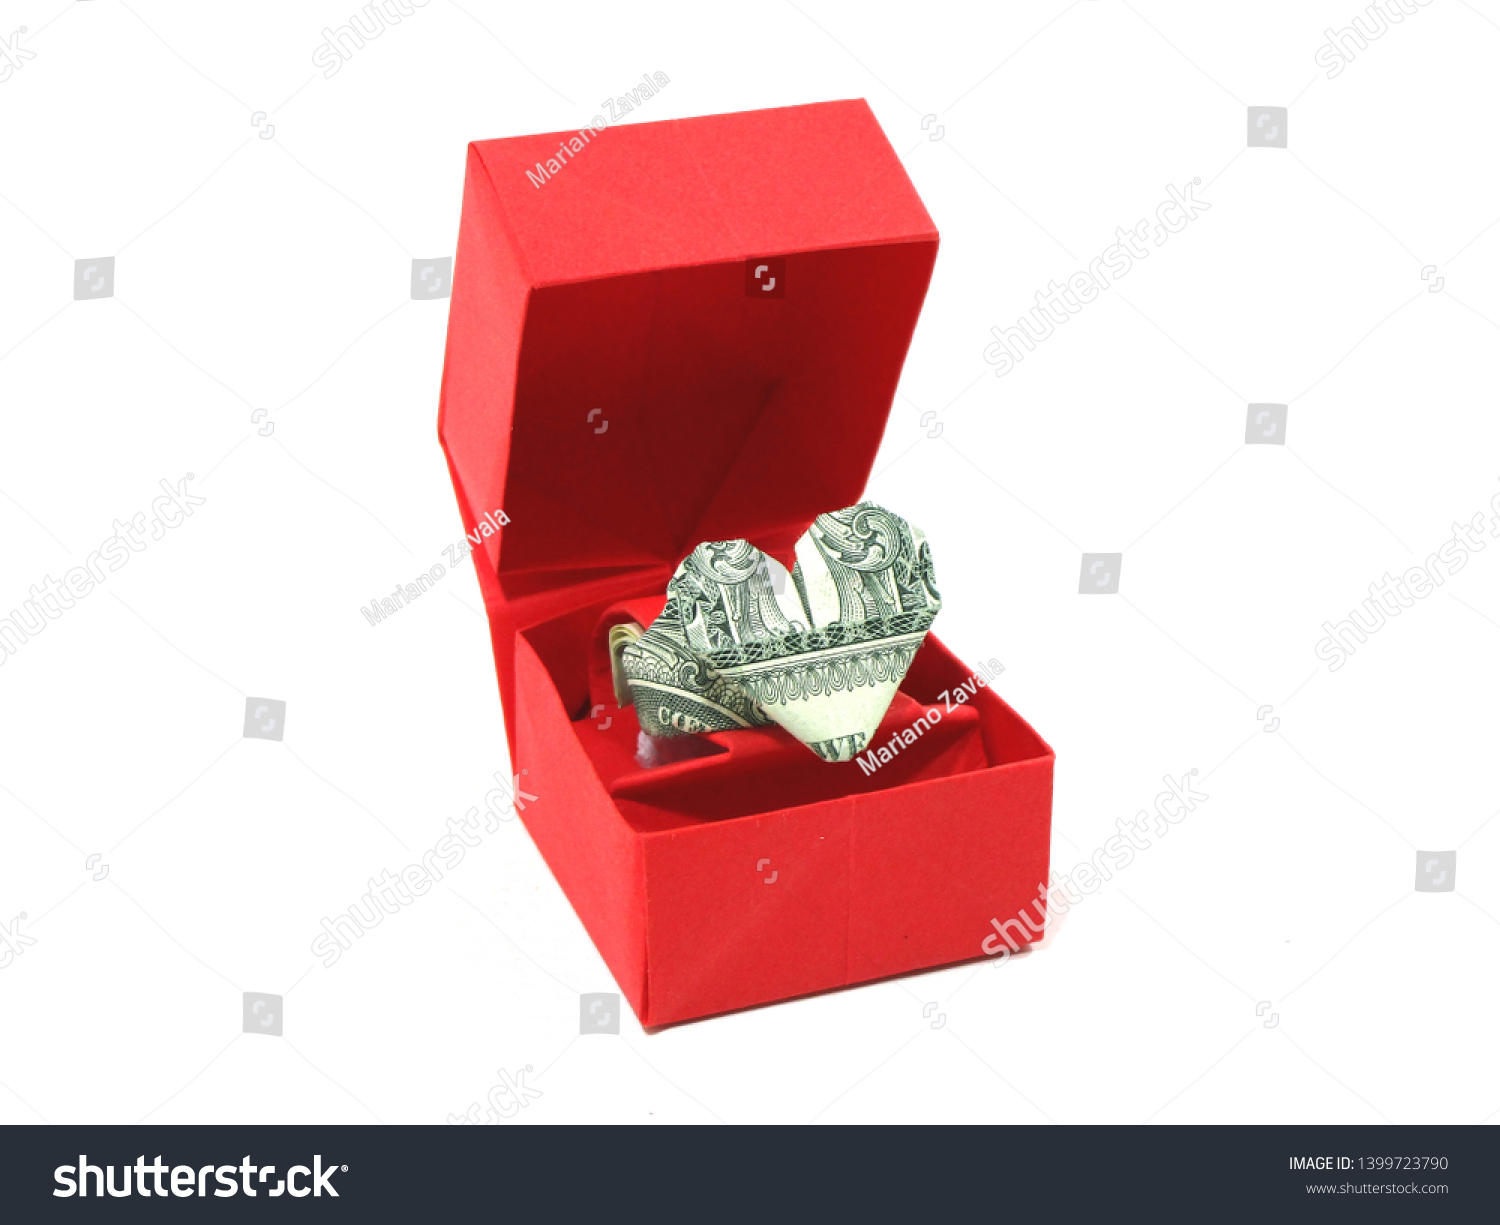 Dollar Origami|How to fold heart ring with one dollar - YouTube | 1225x1500